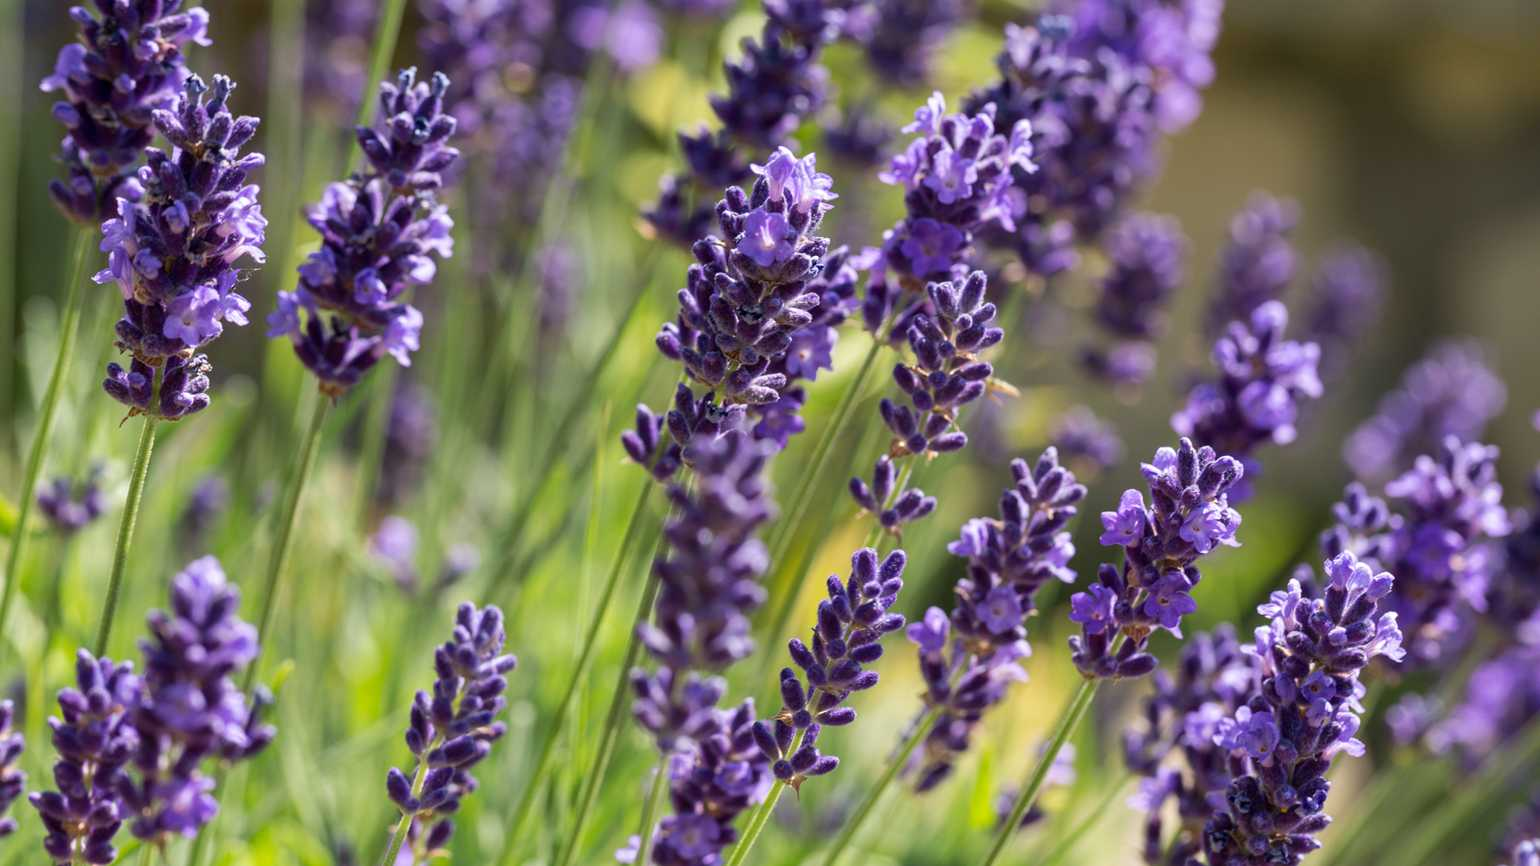 Lavender flourishing in a garden; Getty Images